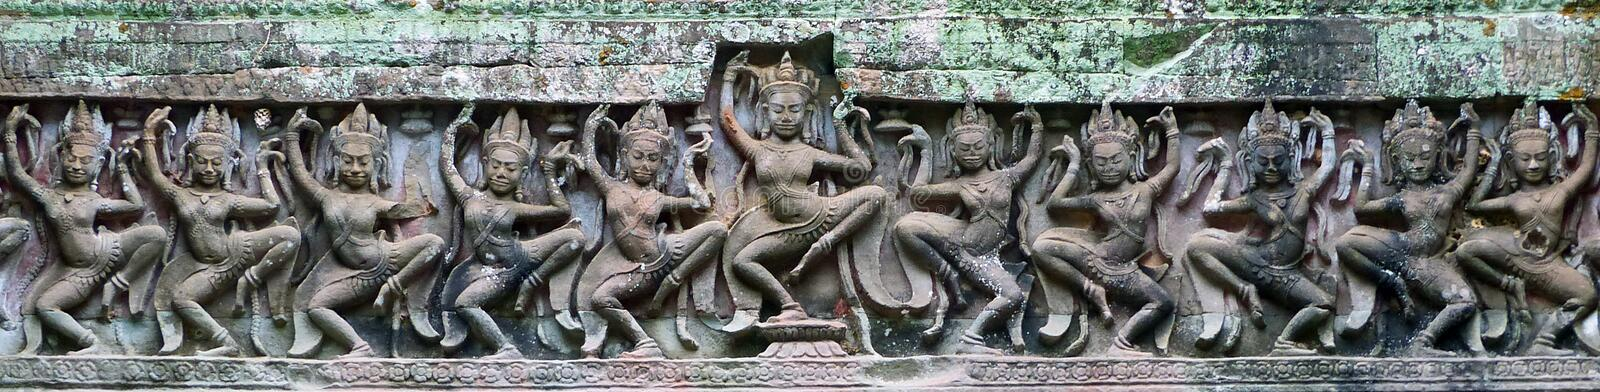 Ancient Khmer Laterite Stone Carving of Female Dancers stock images